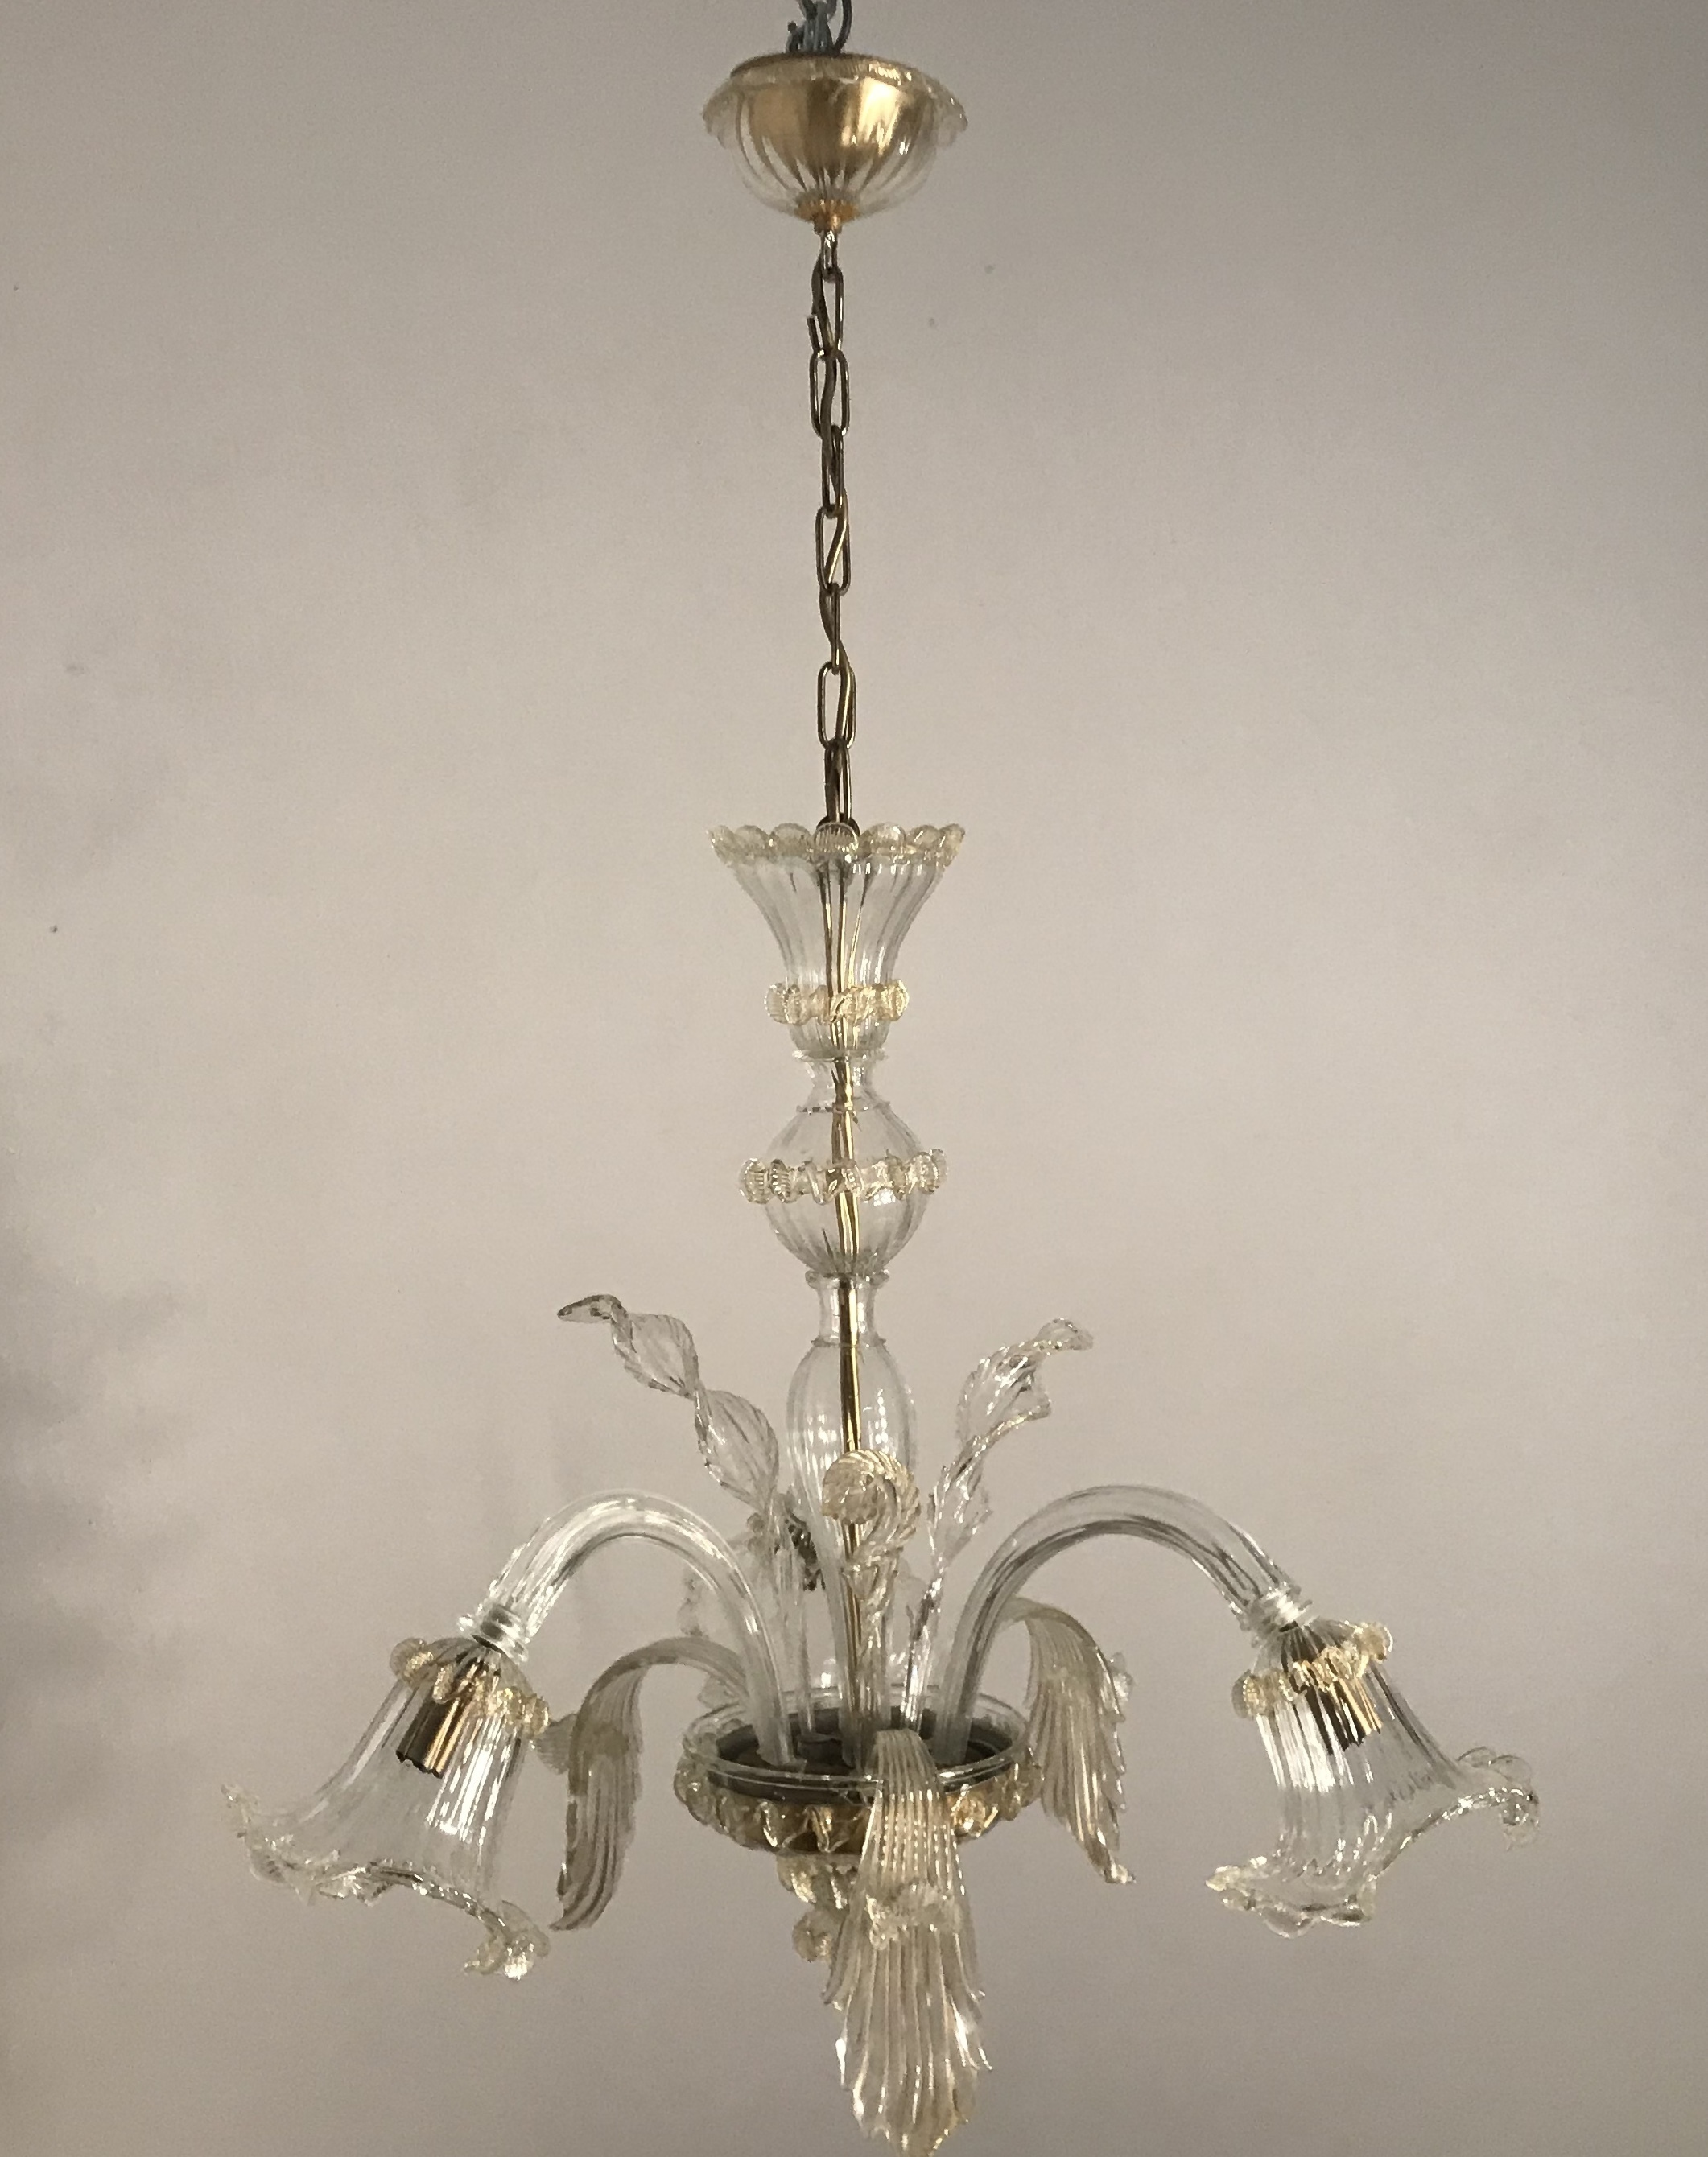 Murano chandeliers and Venetians mirrors: the Spare parts : 2019